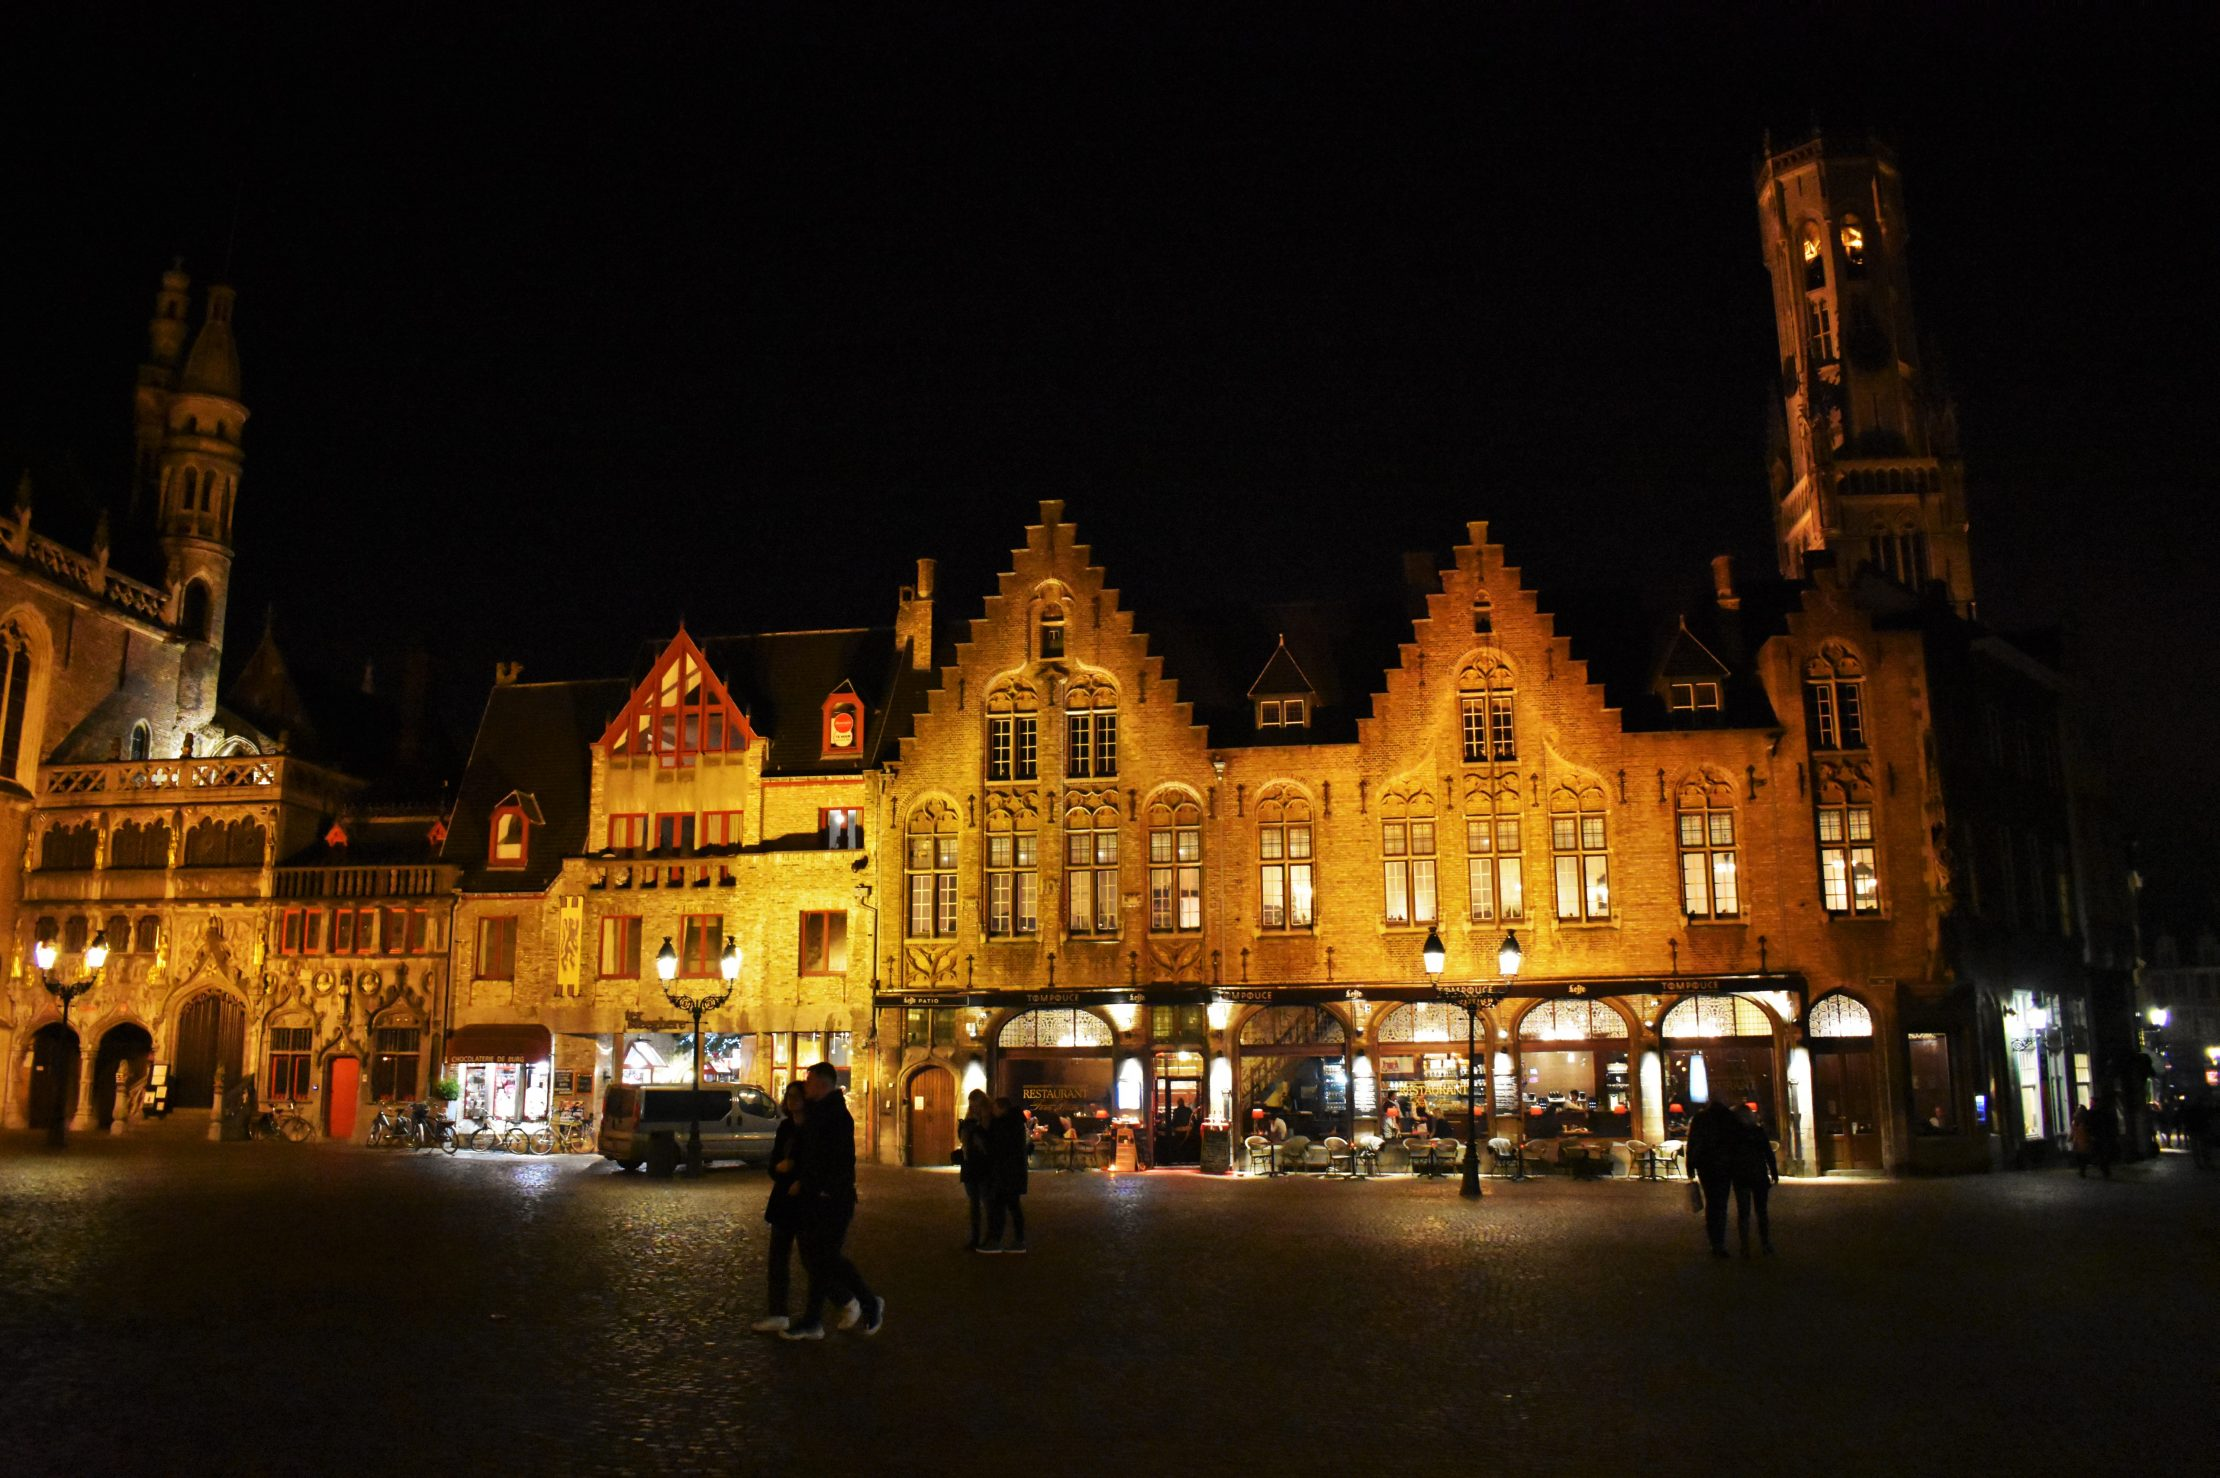 Atmosphere of Bruges